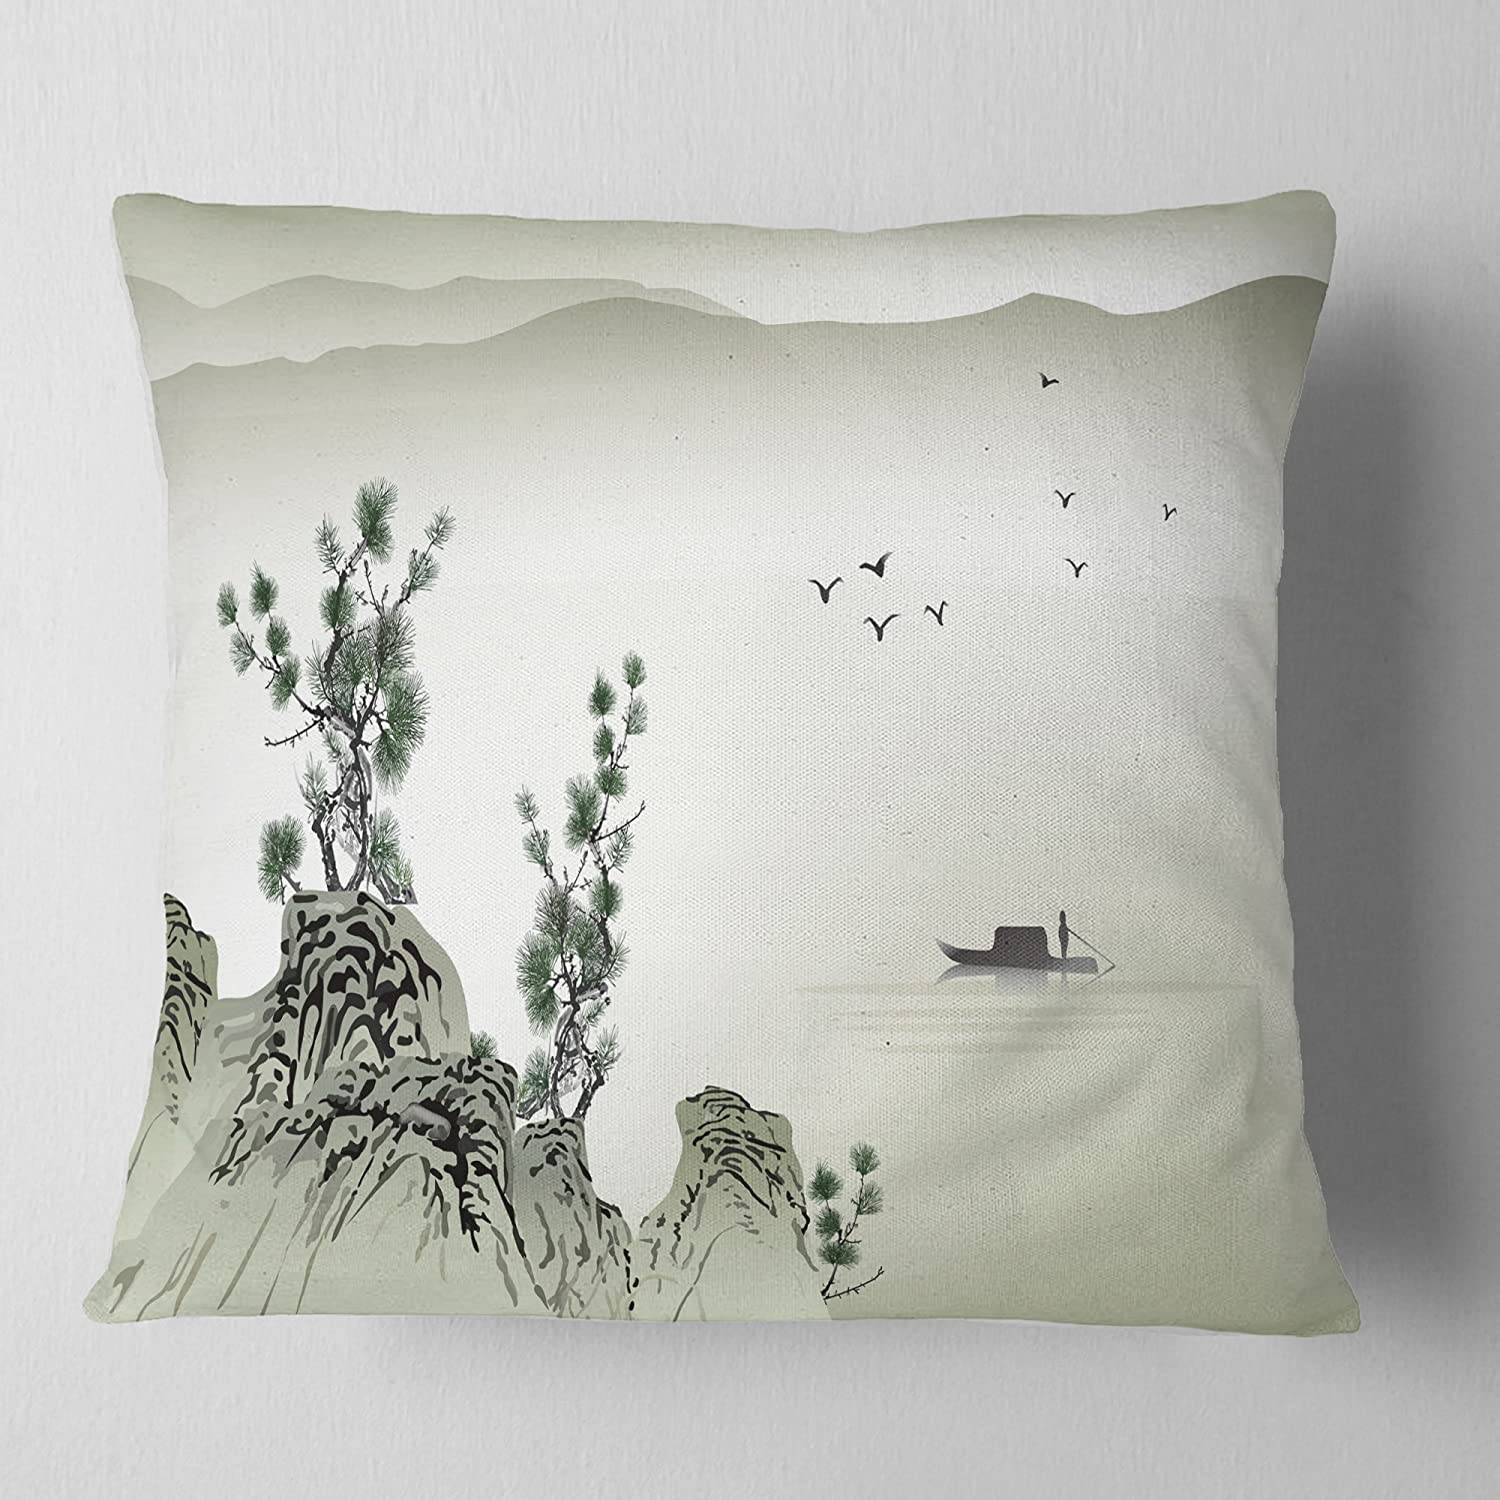 Sofa Cushion Cover Printed On Both Side Designart Cu6491 16 16 C Mountains And Sea Landscape Printed Throw Cushion Pillow Cover For Living Room 16 Inches Round Pillow Insert Home Kitchen Throw Pillow Covers